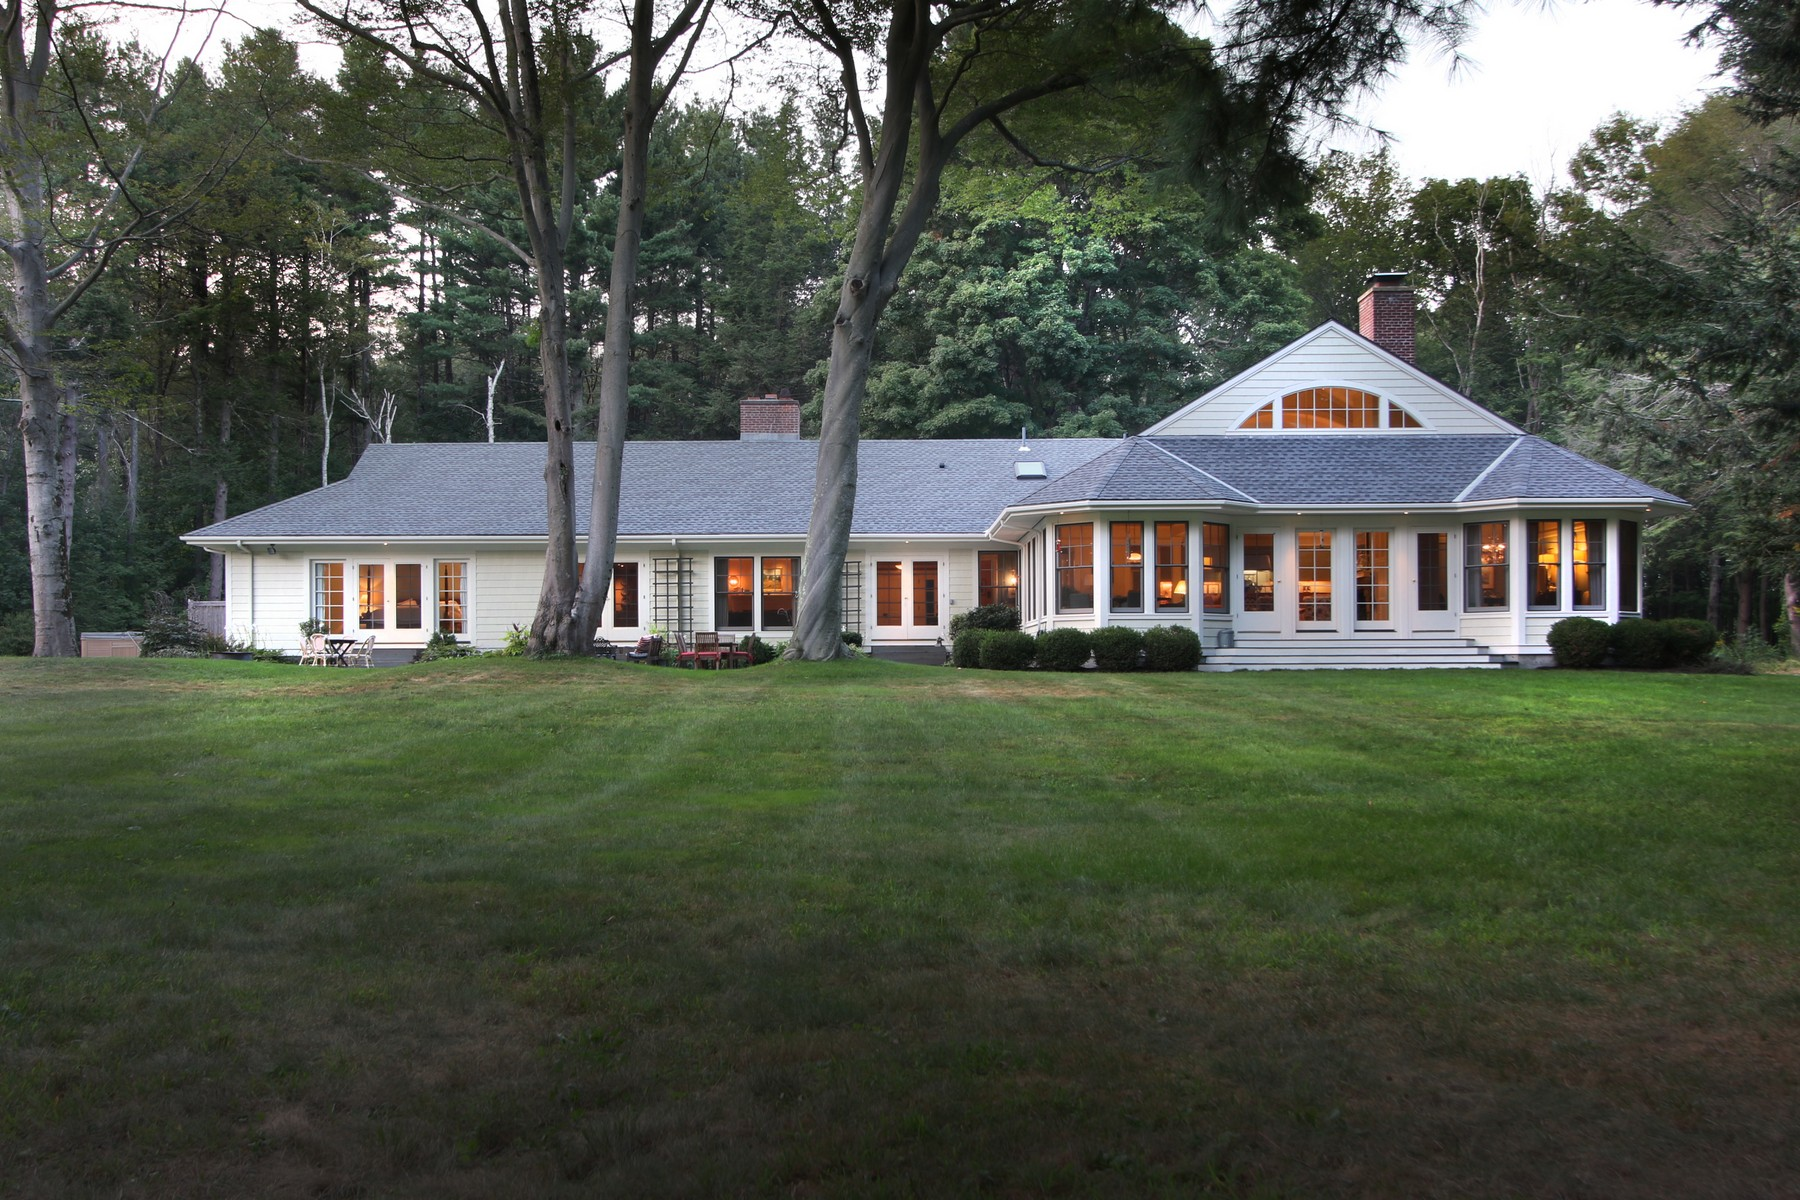 Single Family Home for Sale at Amidst Pristine New England Landscape 28 Old Concord Road Lincoln, Massachusetts 01773 United States